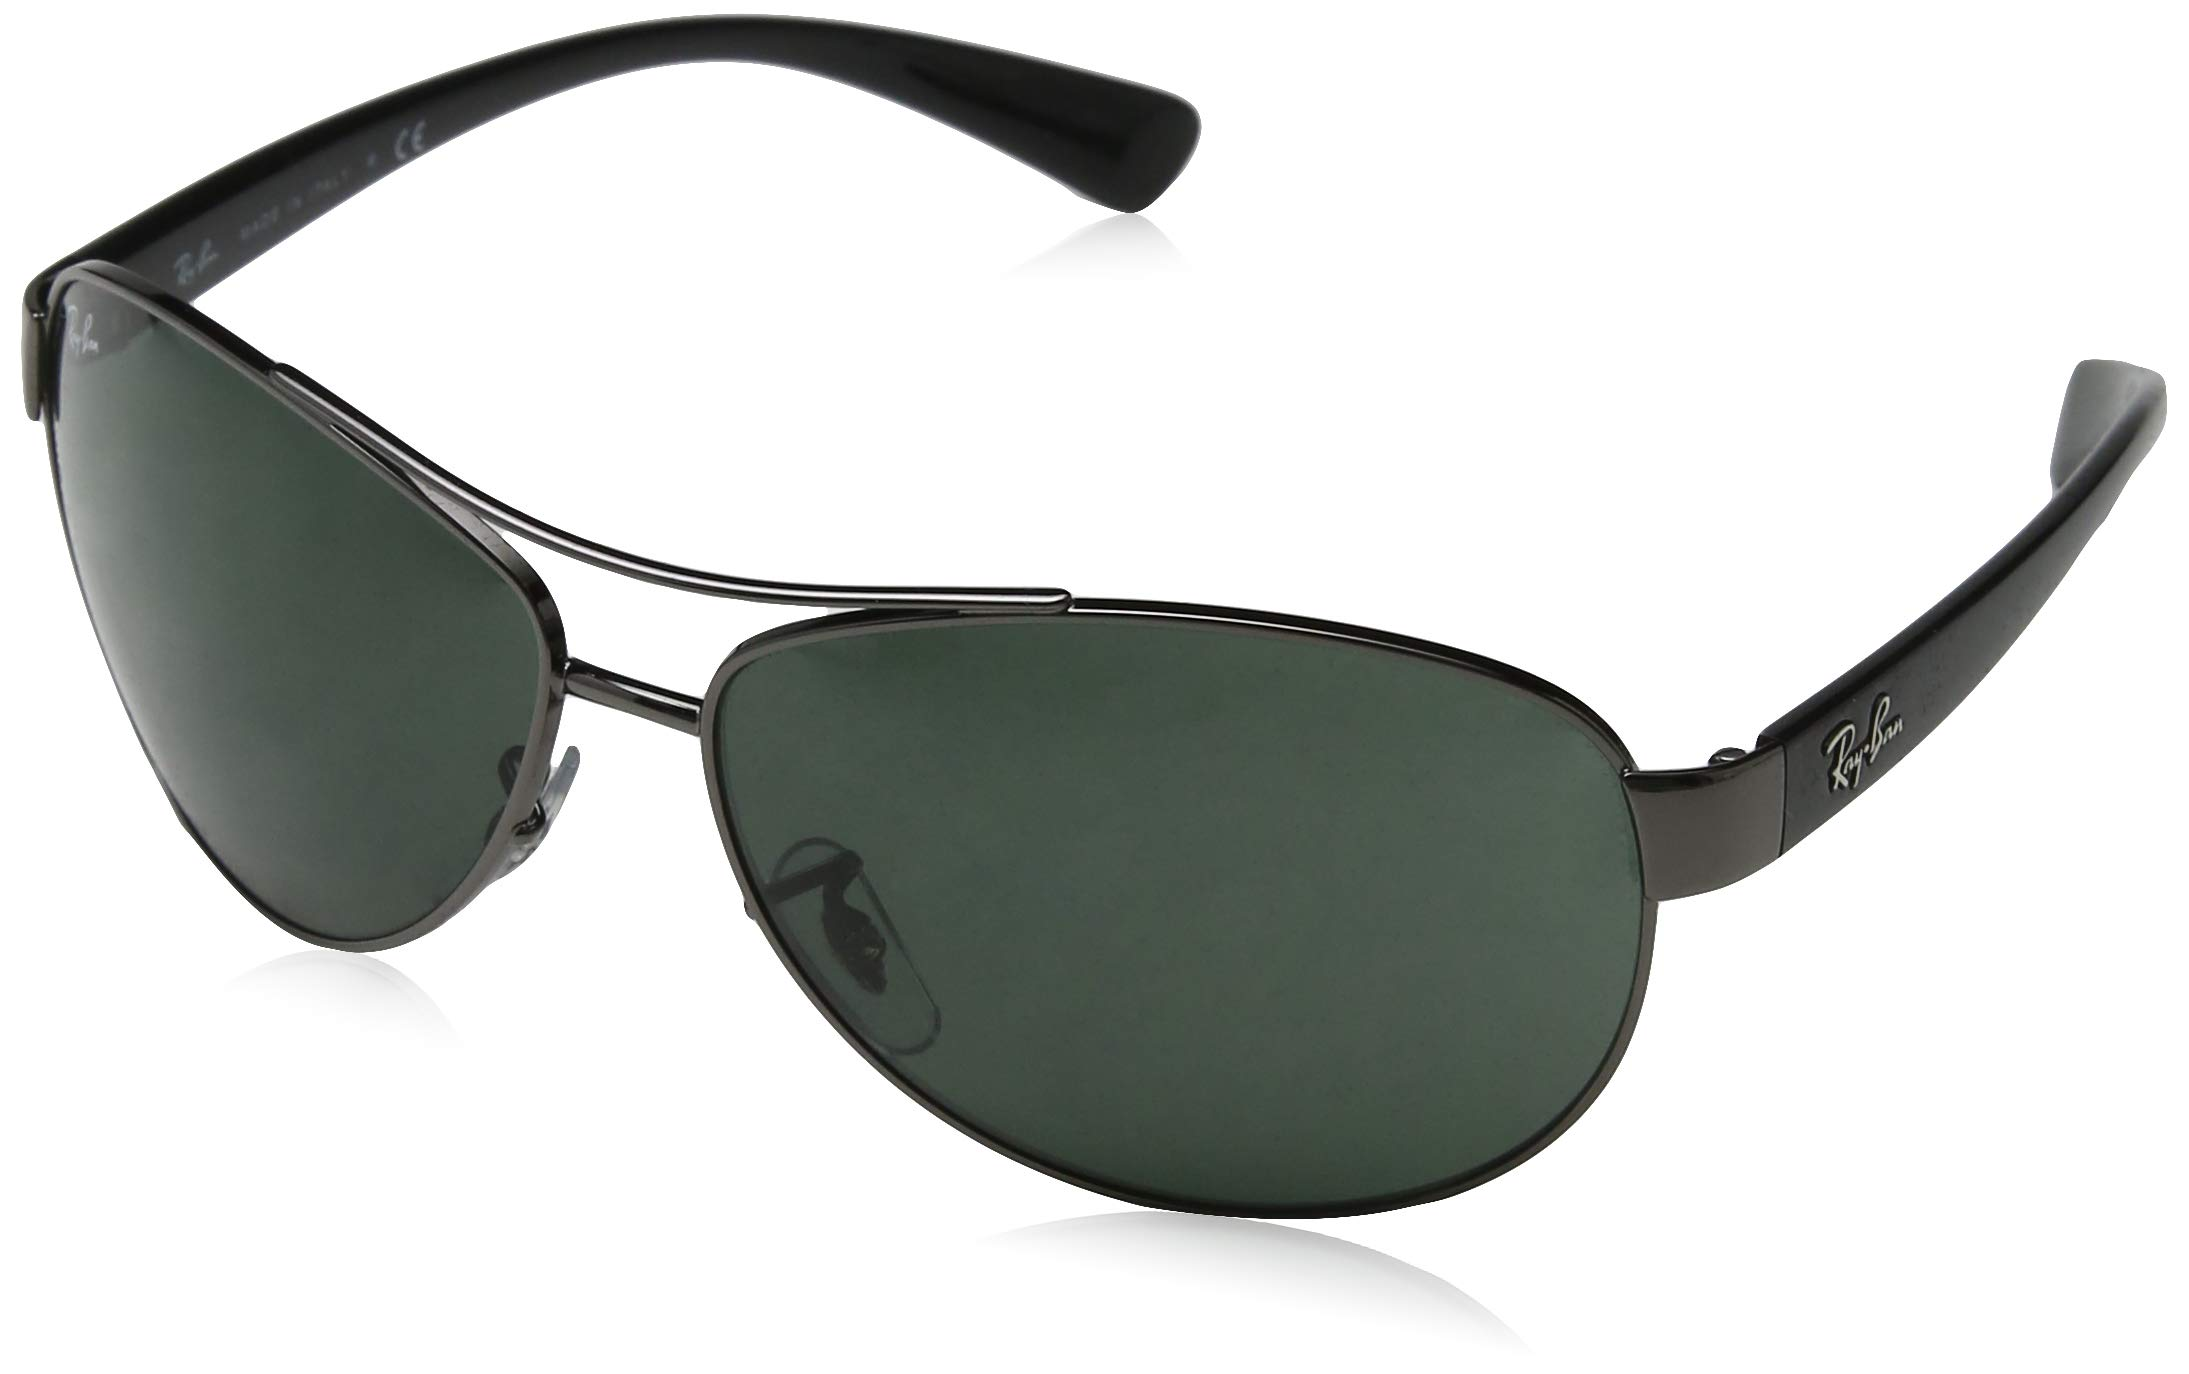 Ray-Ban Sunglasses - RB4165 Justin / Frame: Black Rubber Lens: Gray Gradient (55mm)